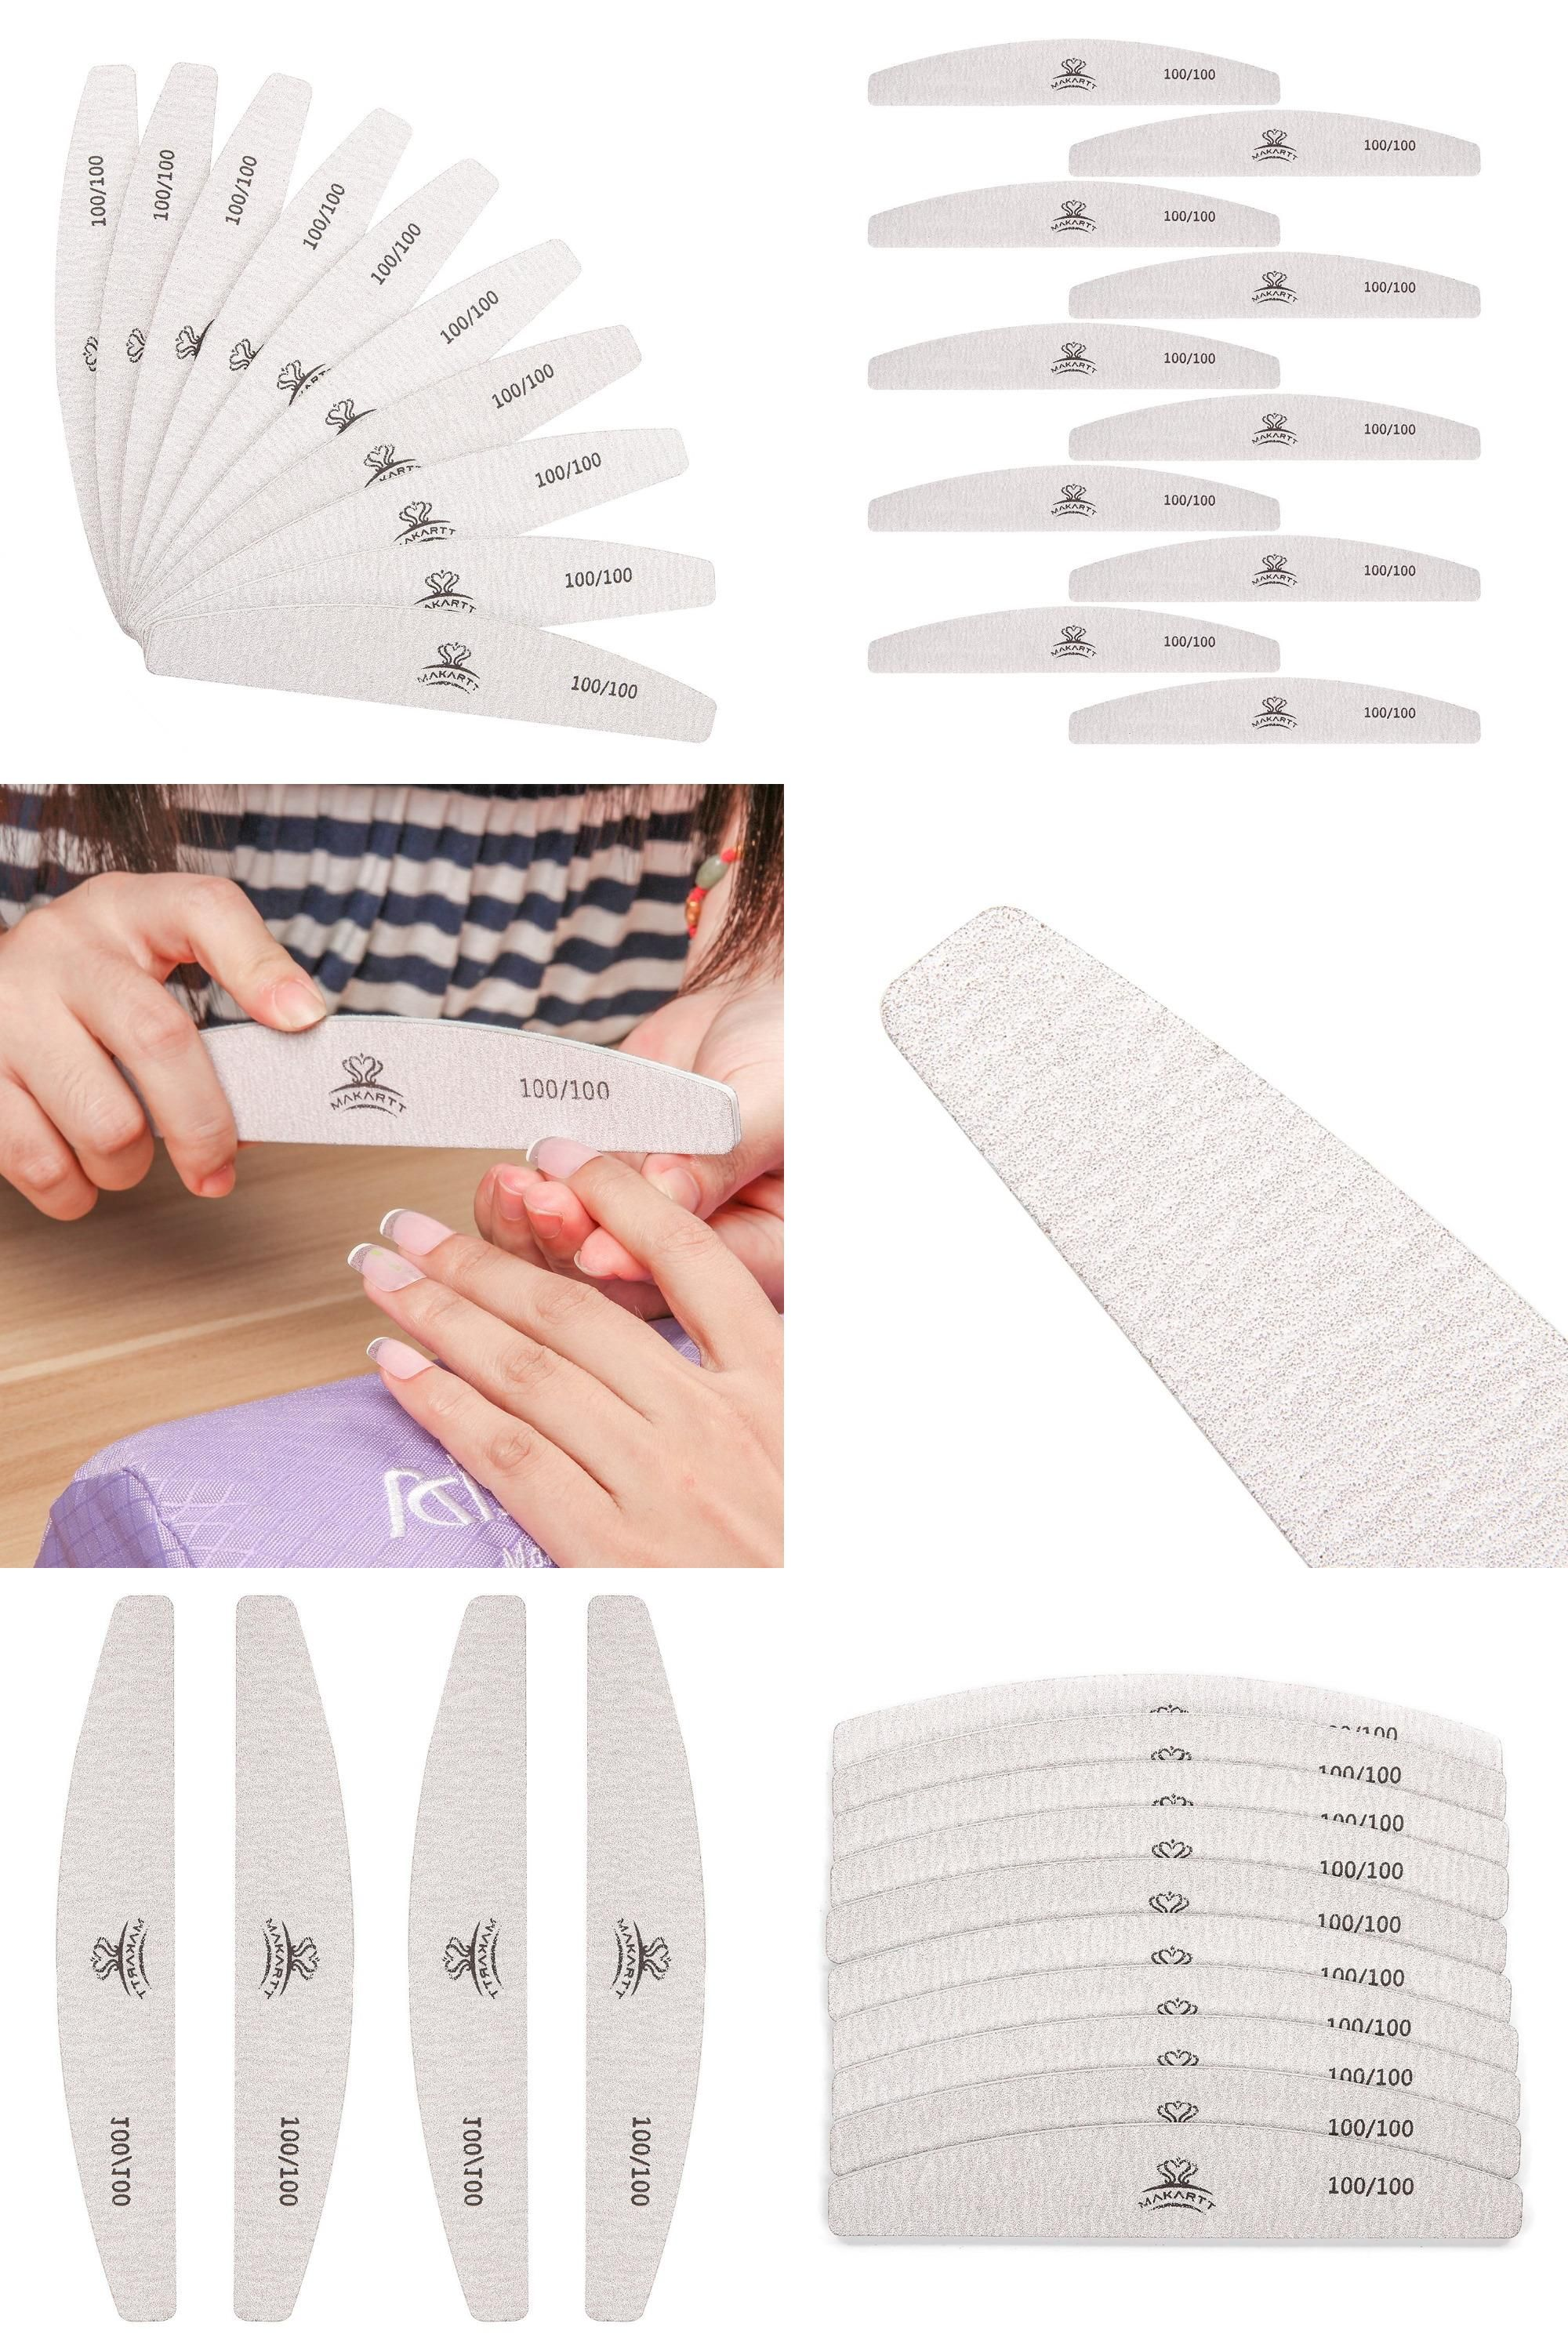 Visit to Buy] 10pcs/ pack Zebra Nail Files Washable Double-Side ...